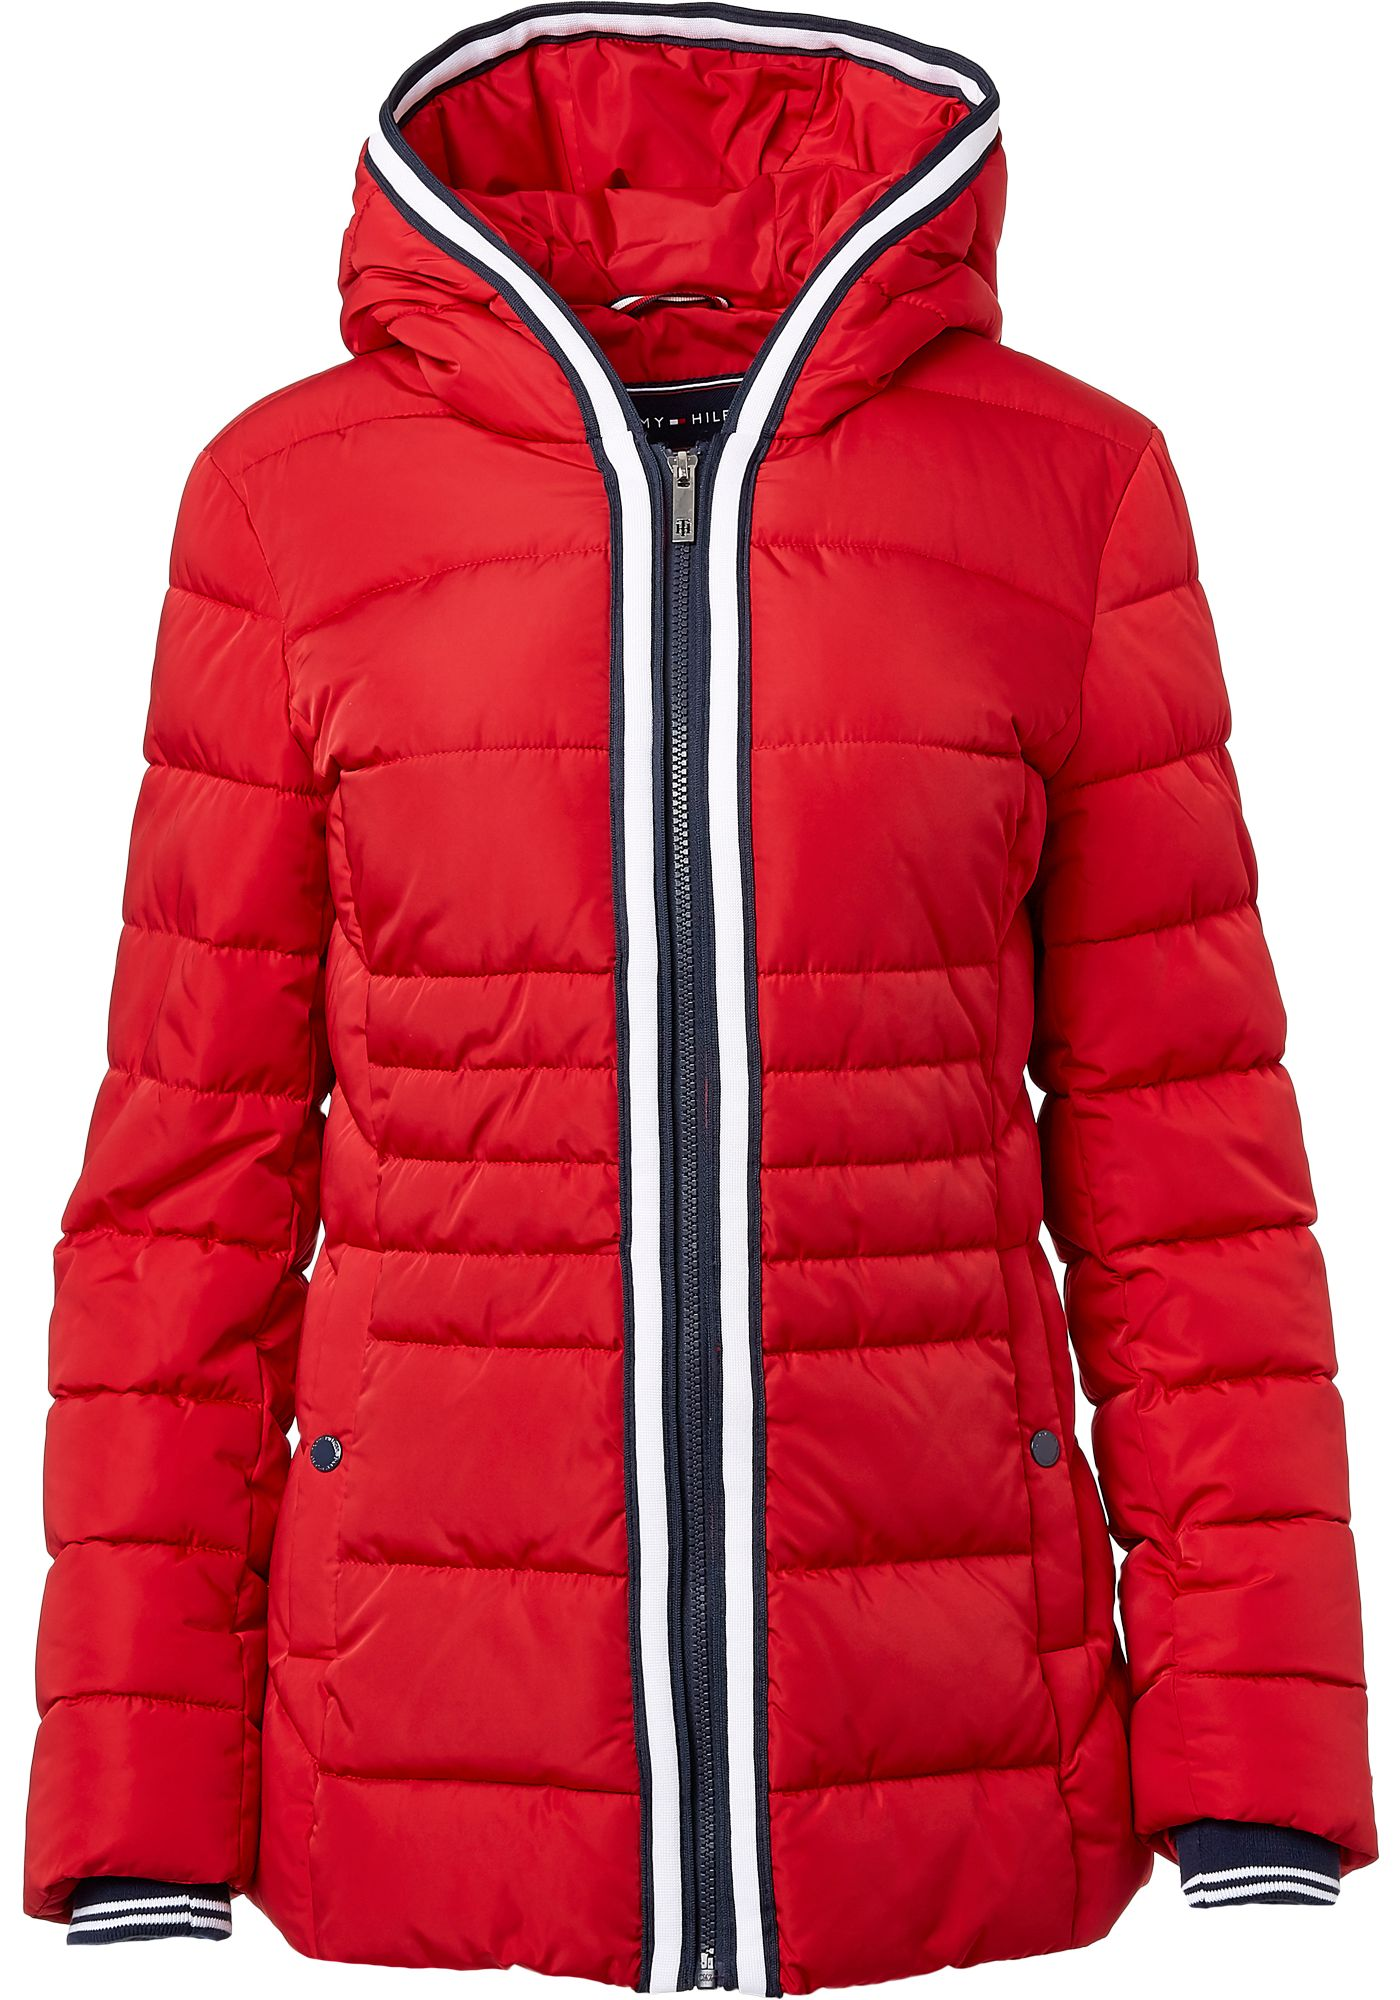 Tommy Hilfiger Women's Taped Puffer Jacket